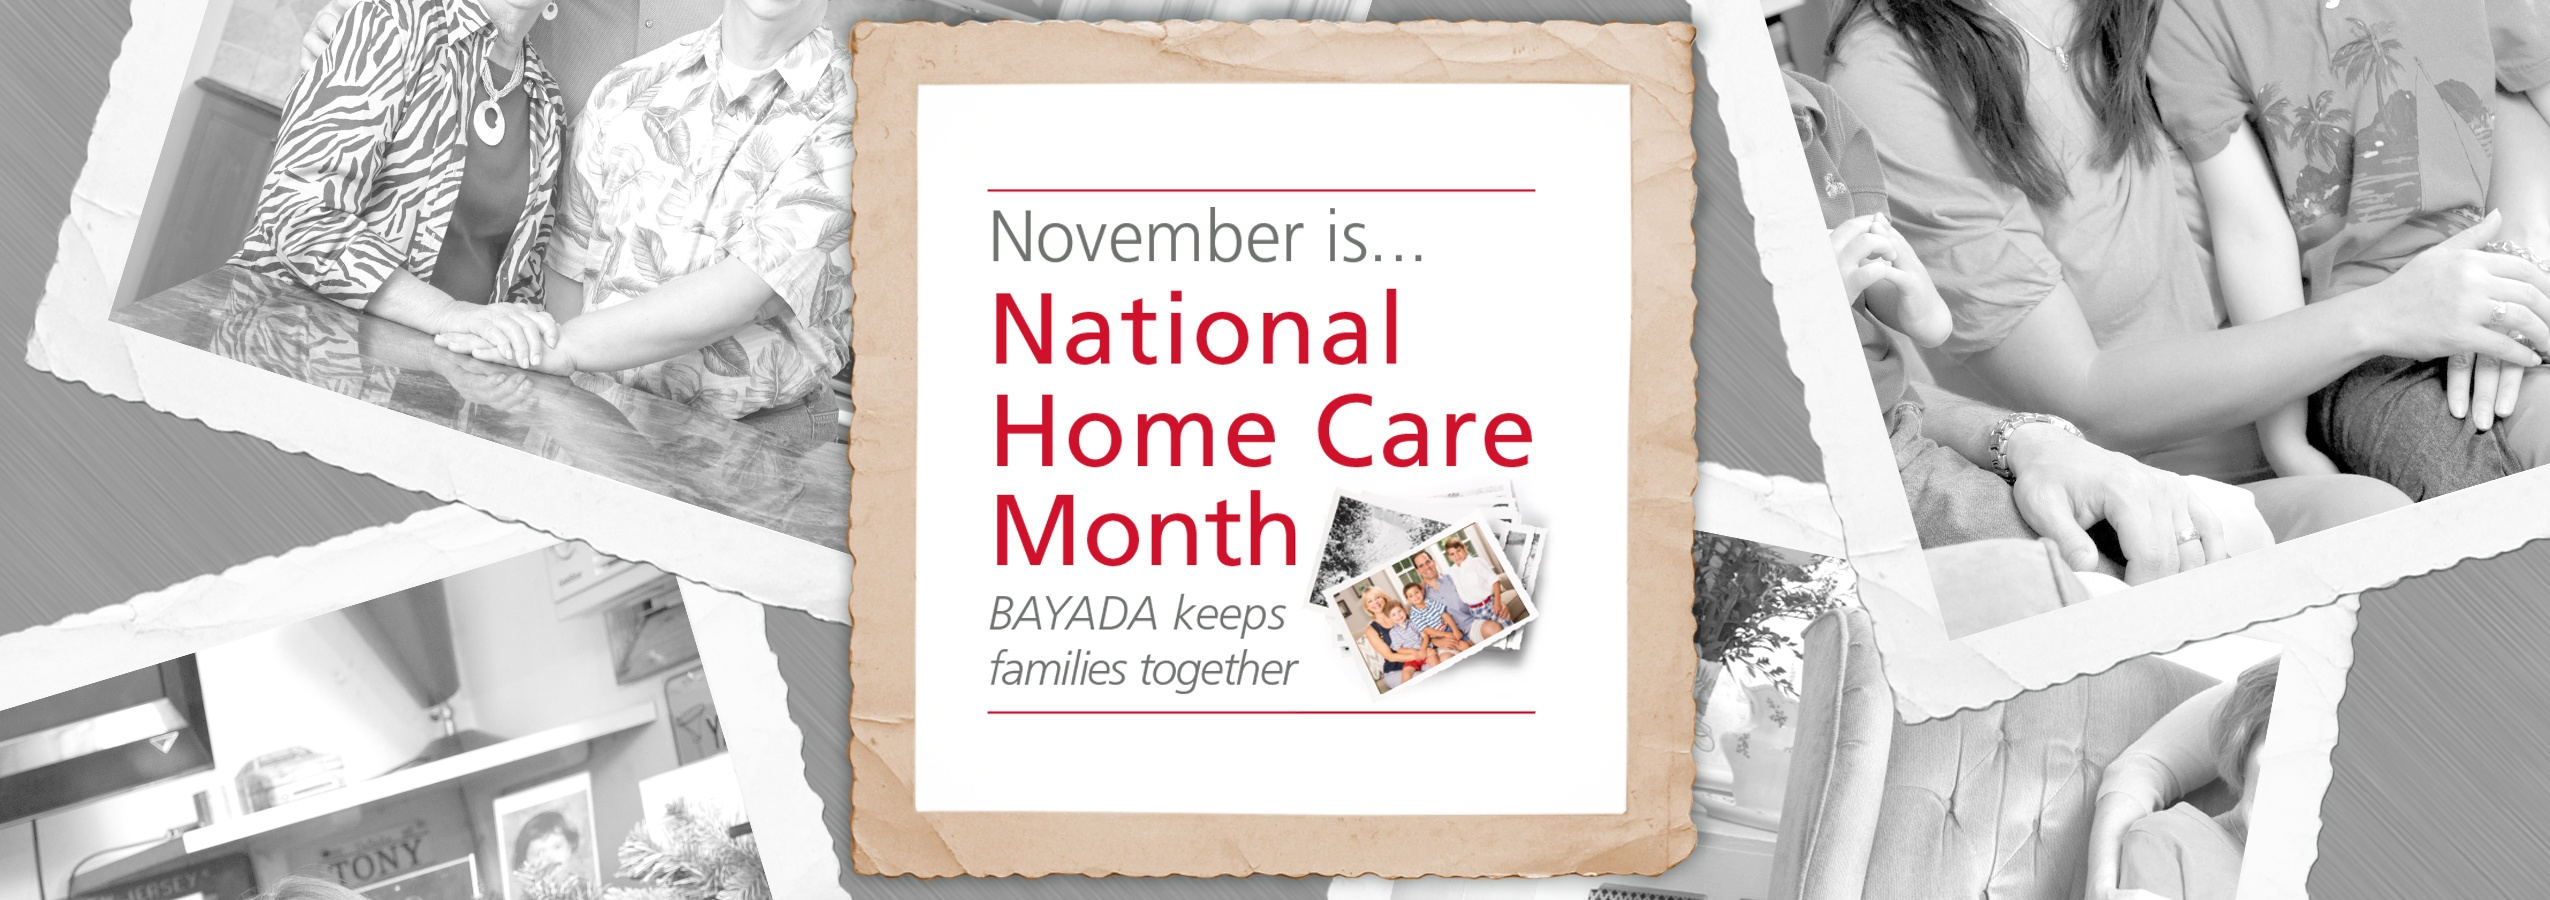 16-73-2188_COM_HomeCareMonth_Flyer.jpg